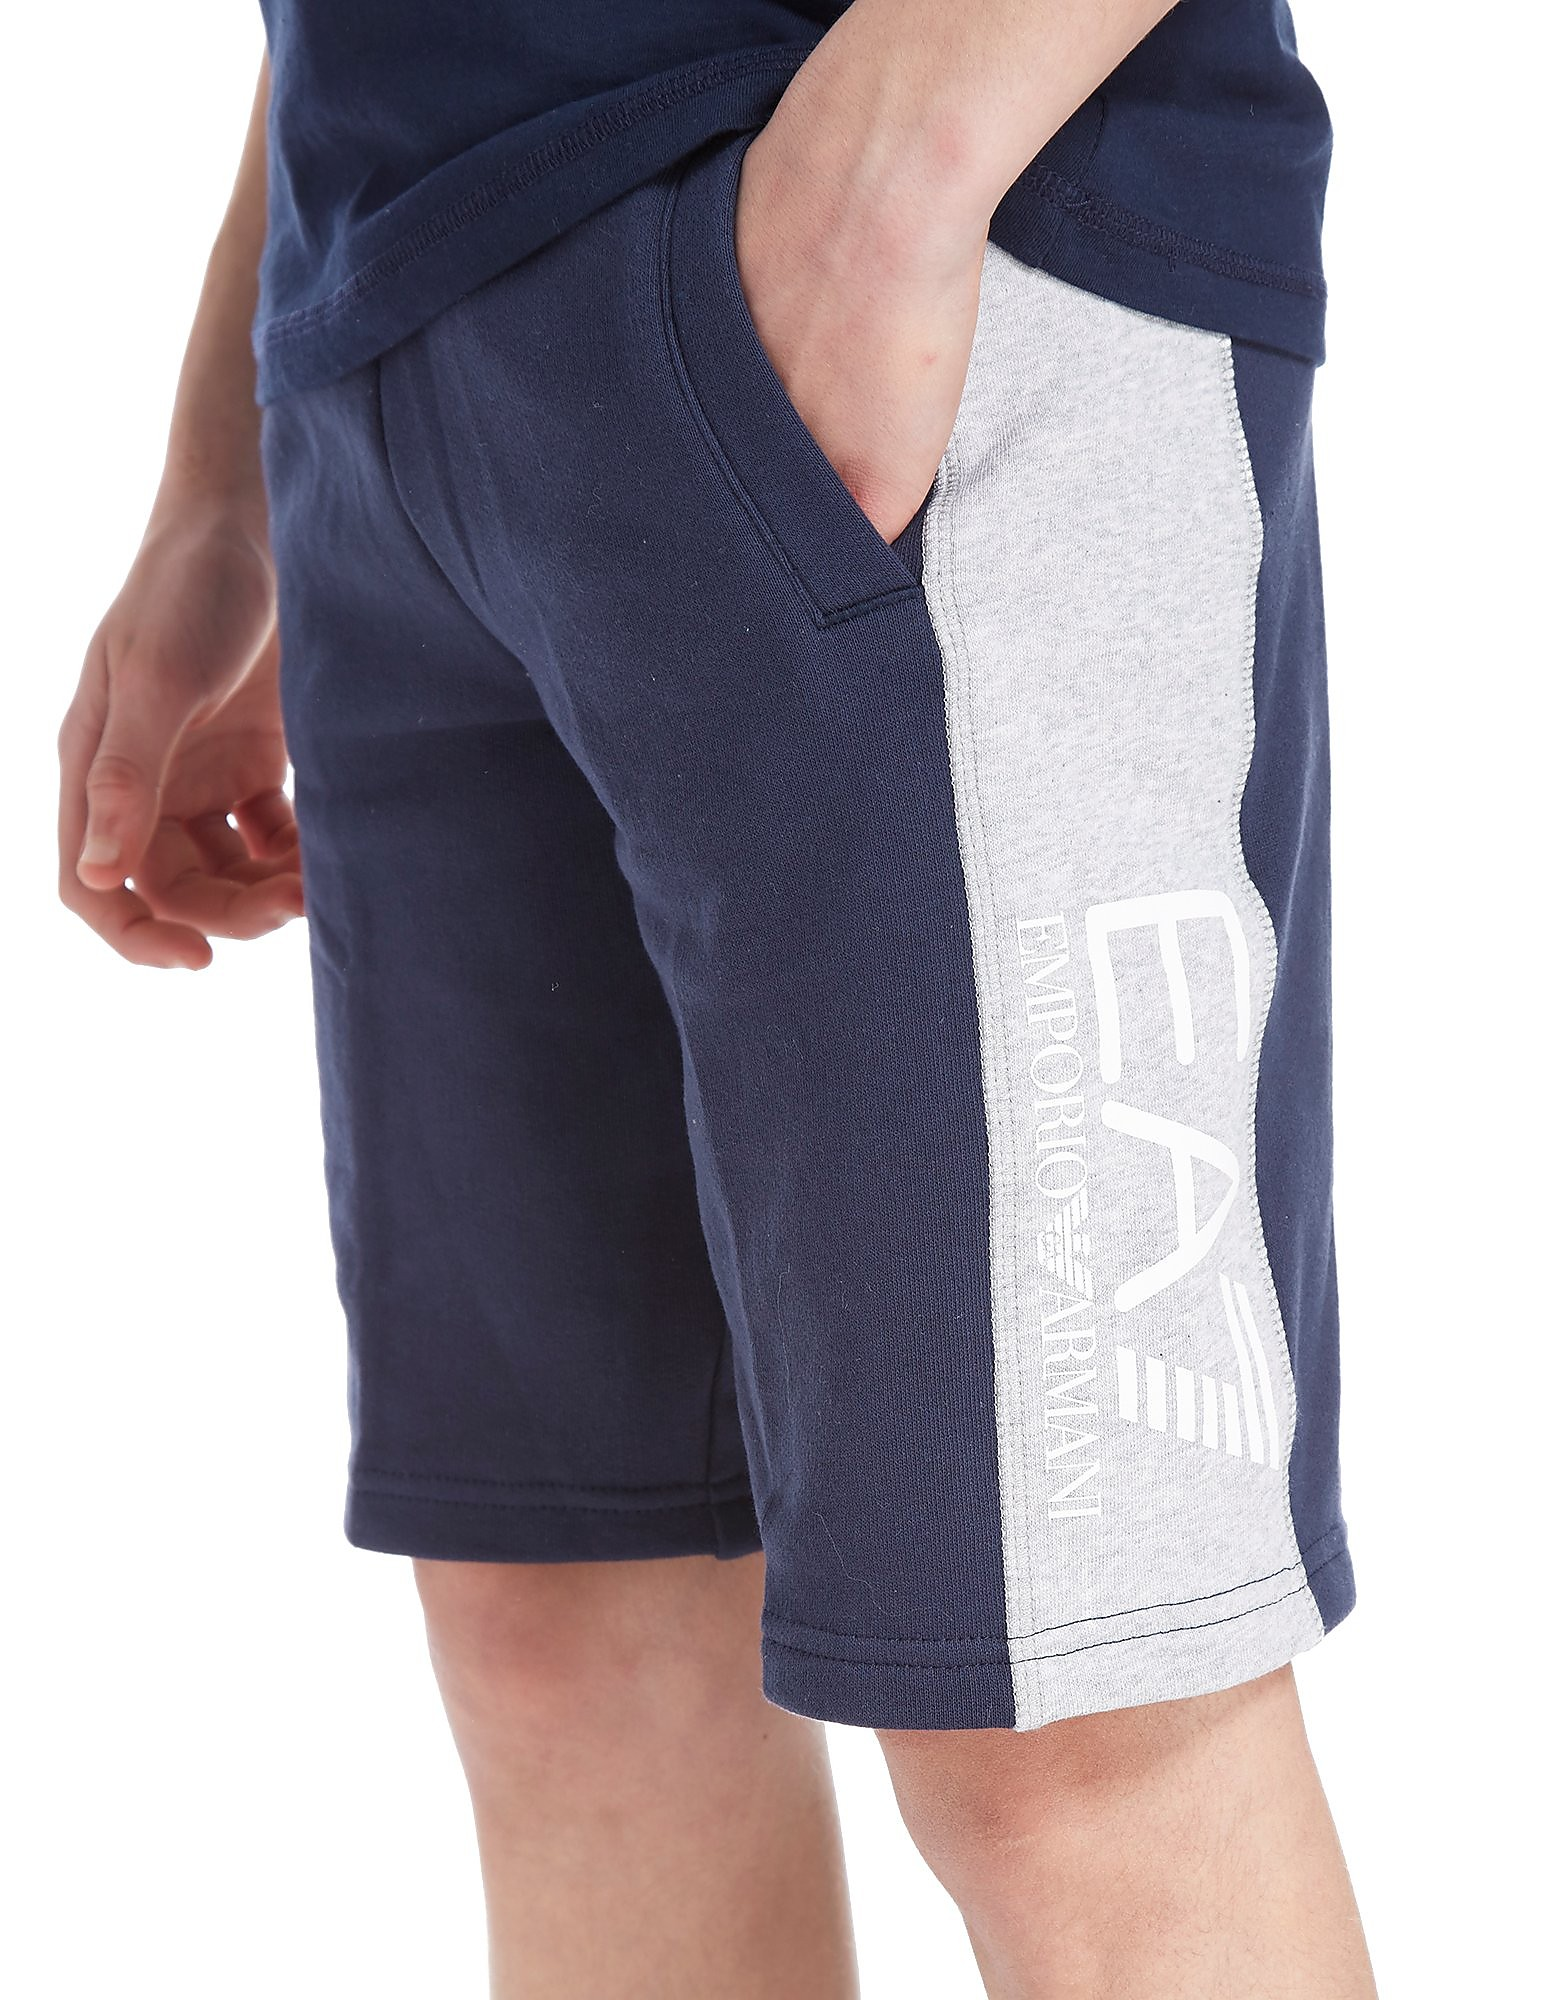 Emporio Armani EA7 Panel Fleece Shorts Junior